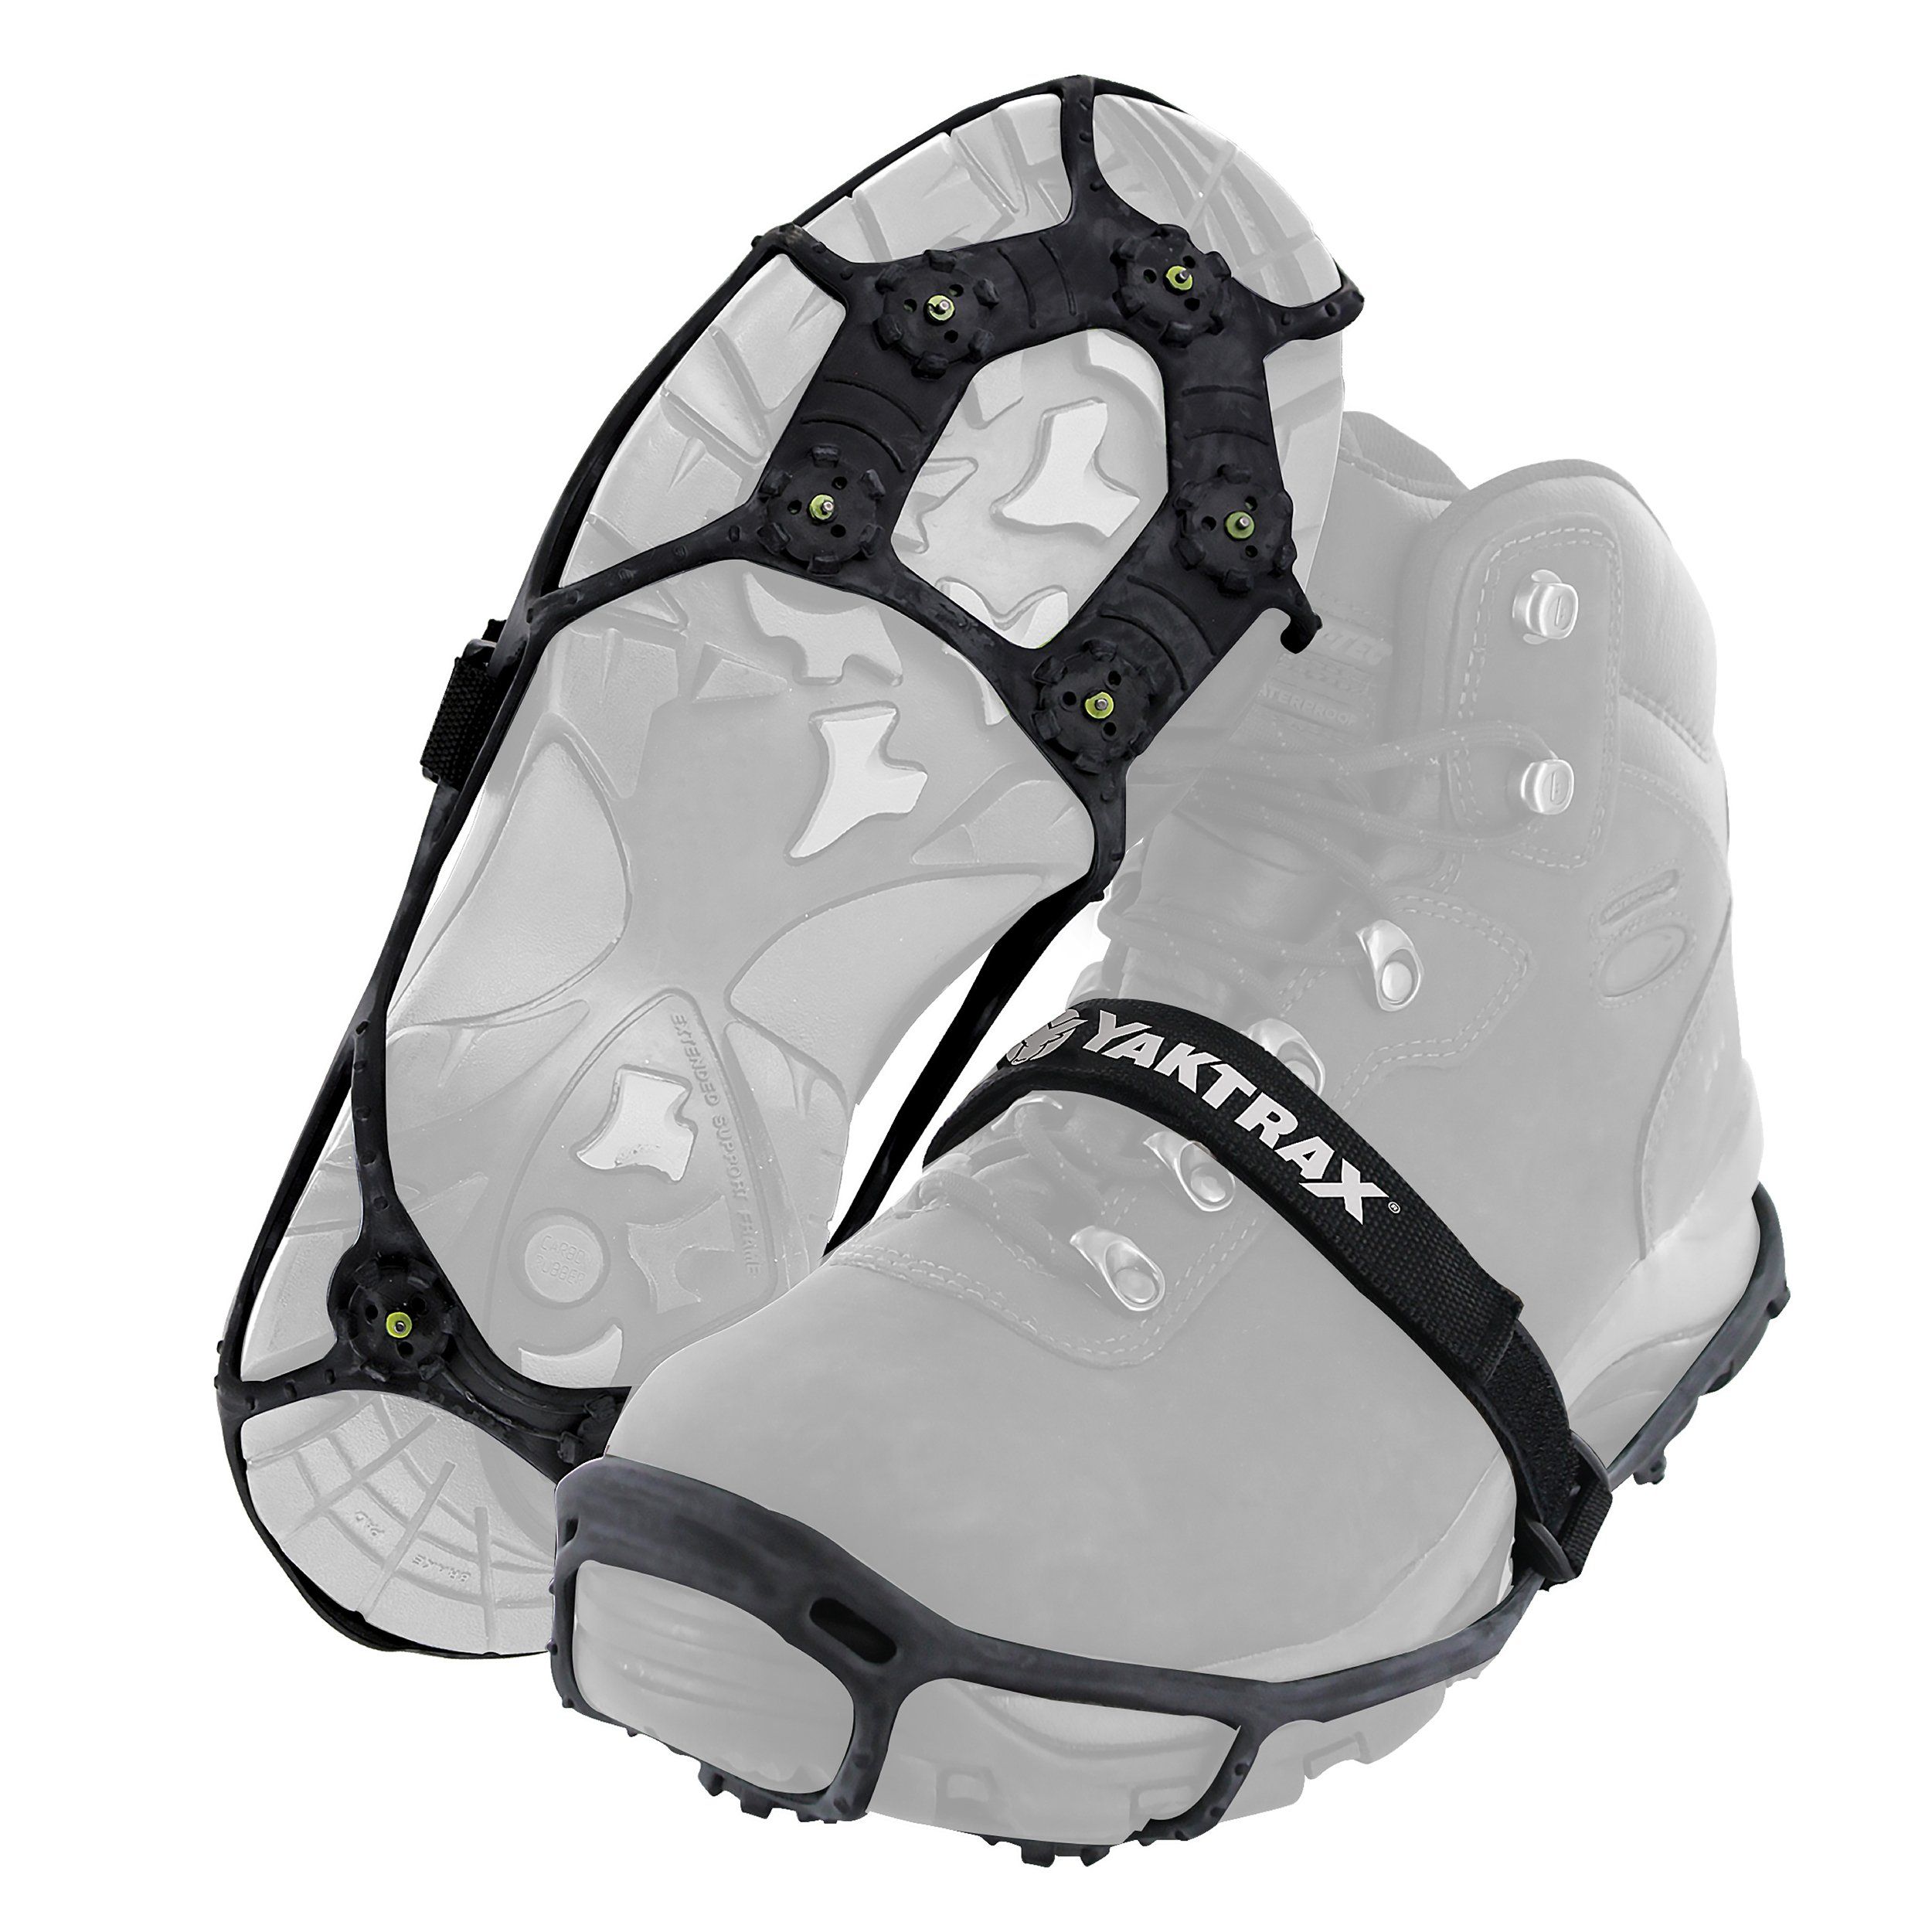 Yaktrax Spikes for Walking on Ice and Snow (1 Pair), Large/X-Large by Yaktrax